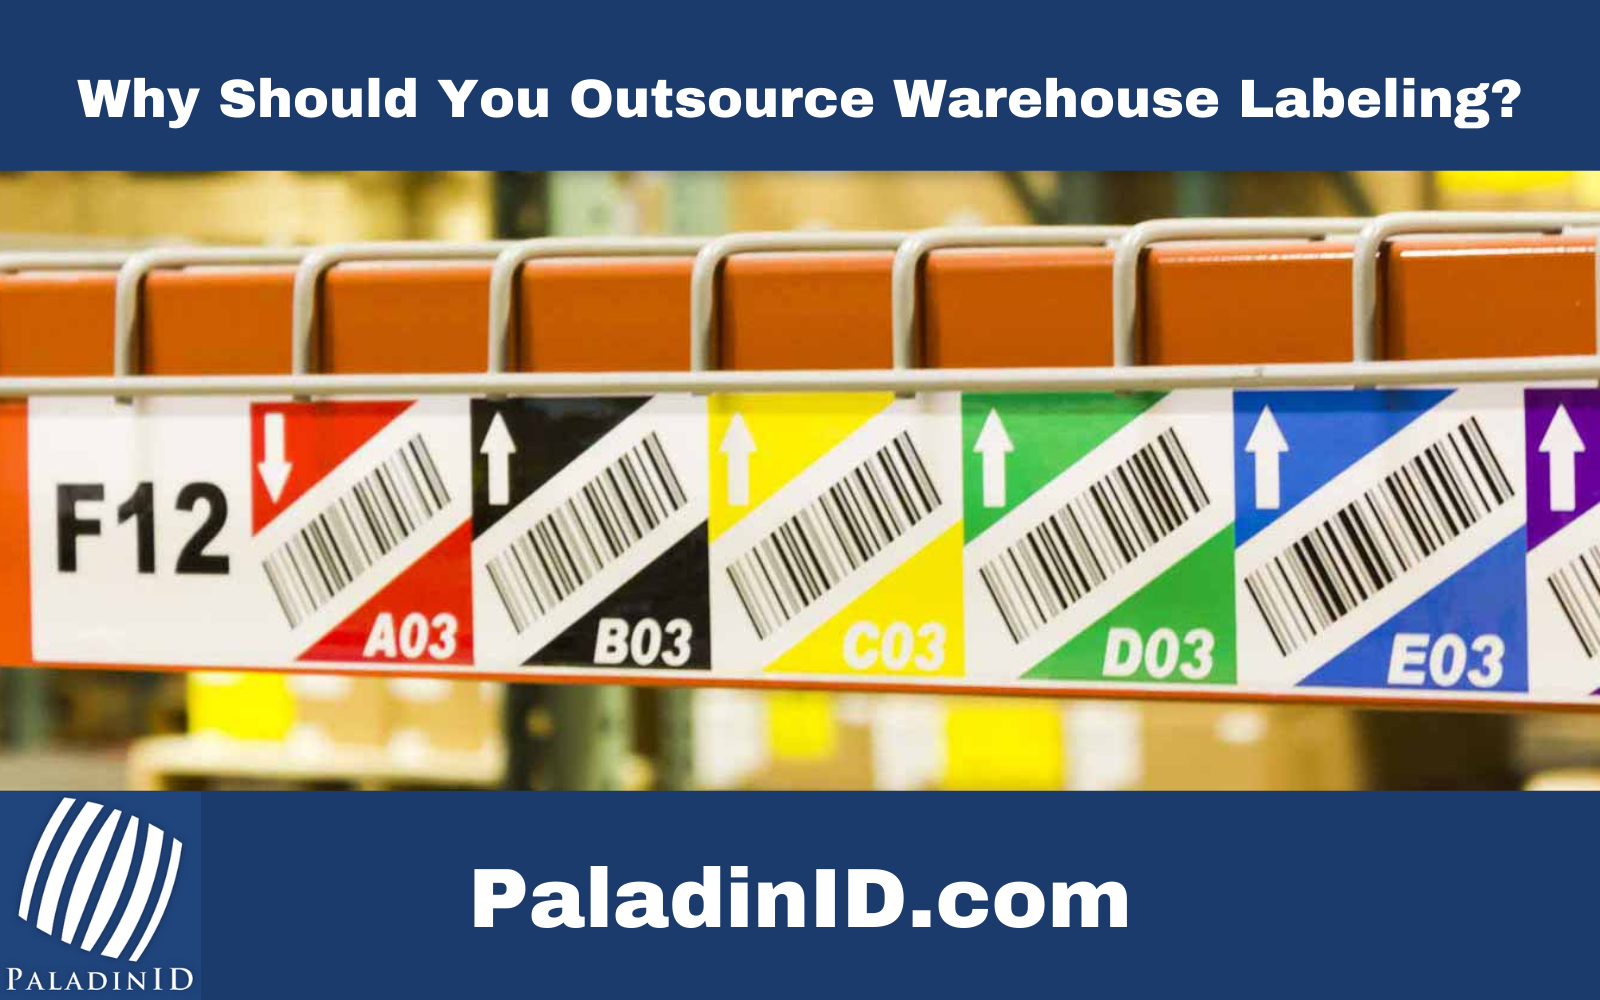 Why Should You Outsource Warehouse Labeling